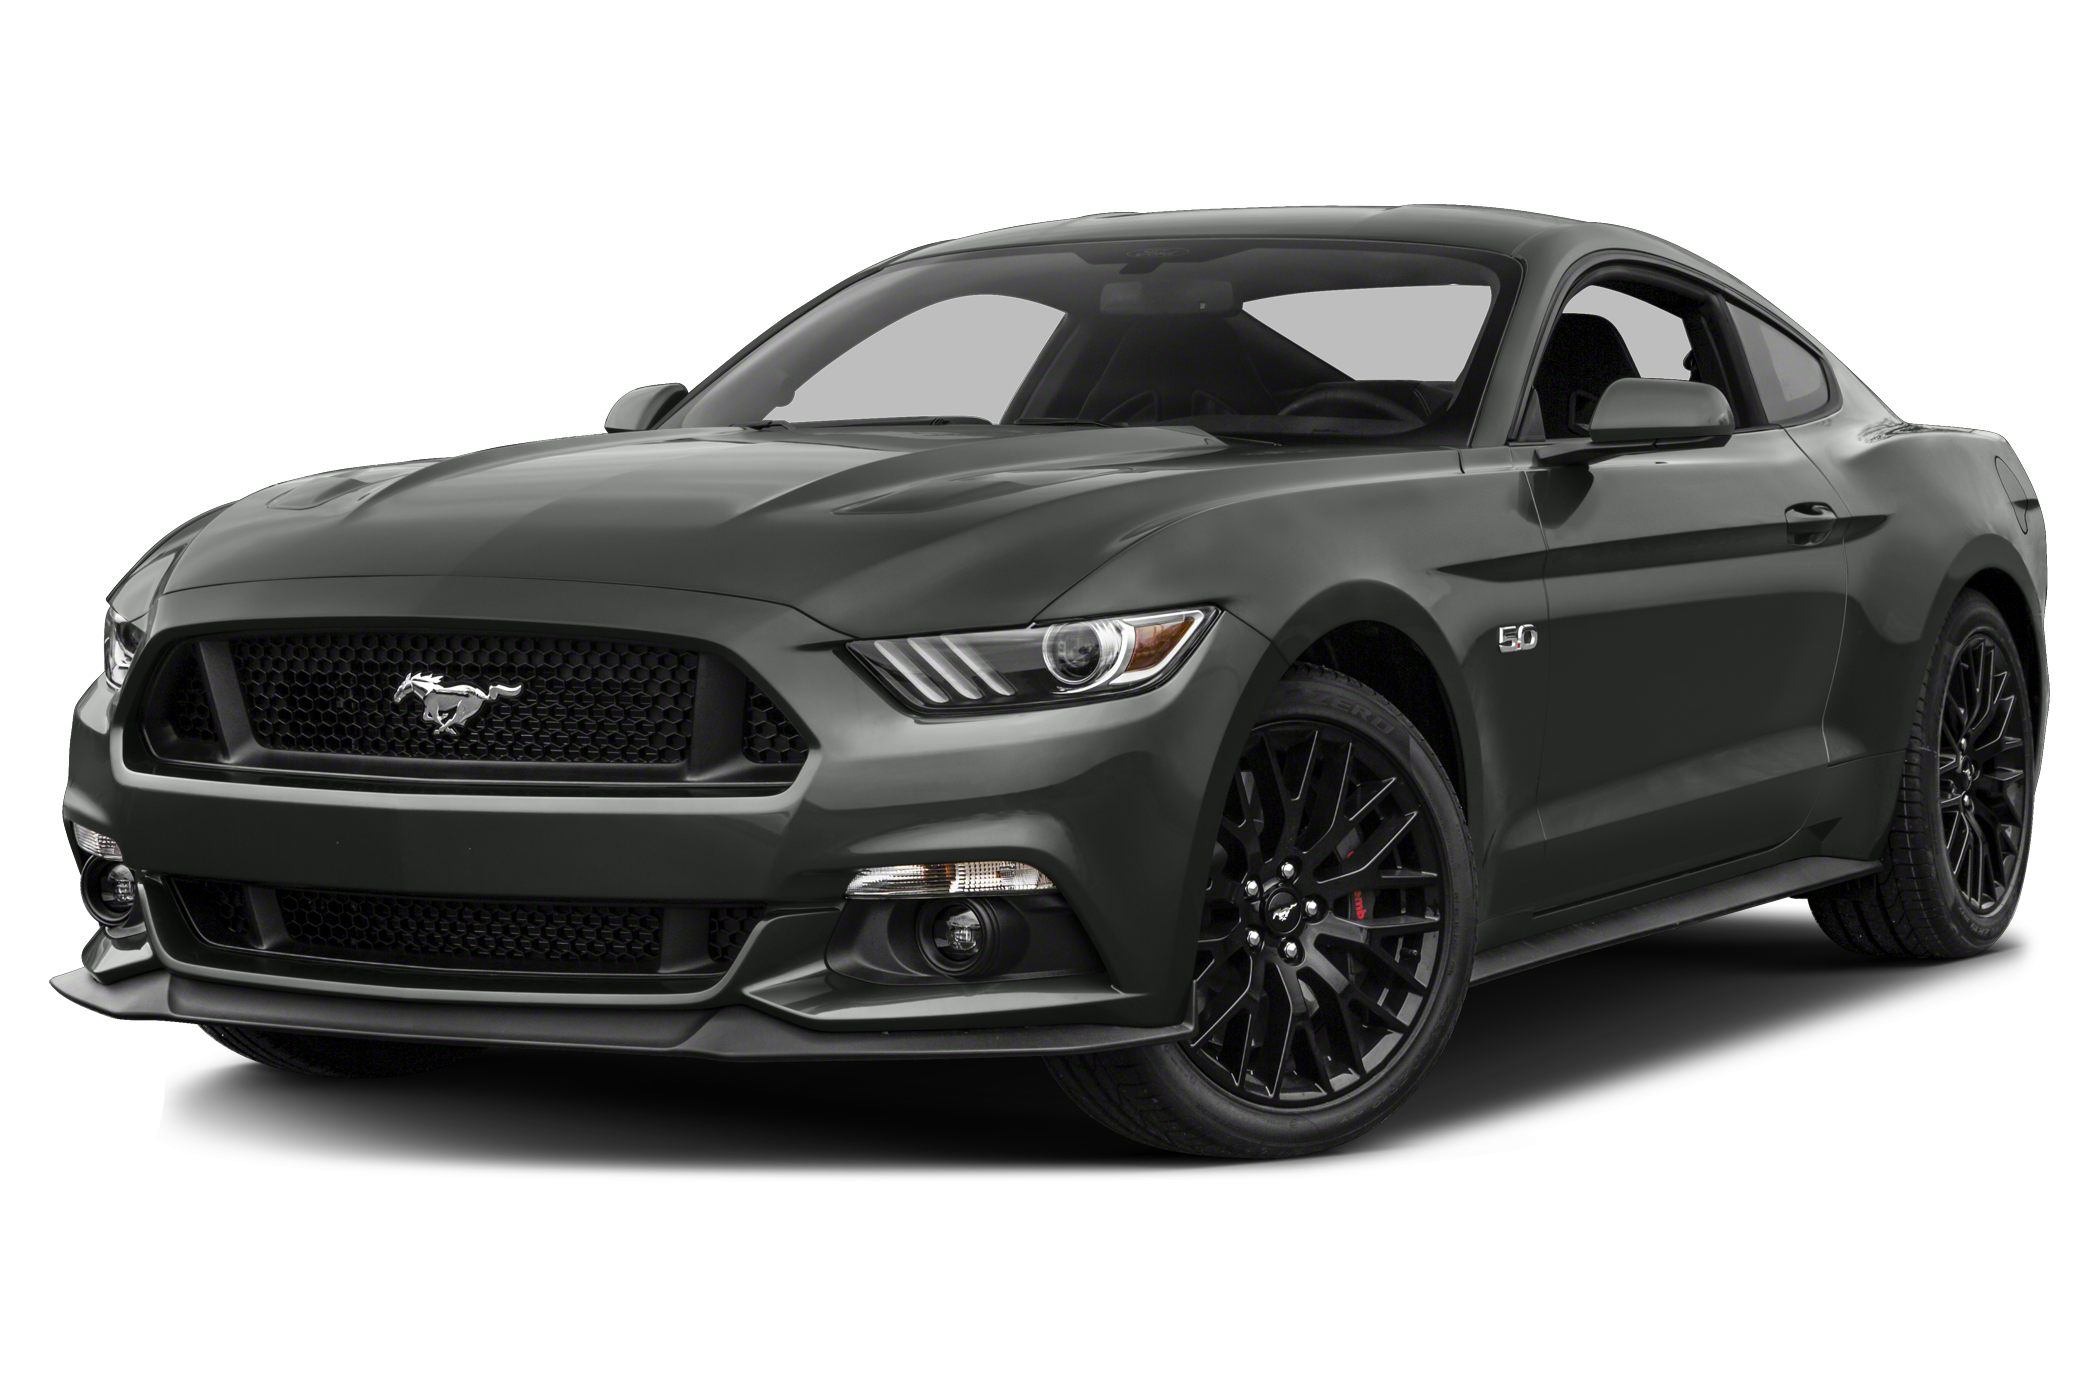 Ford Mustang News, Photos and Buying Information - Autoblog